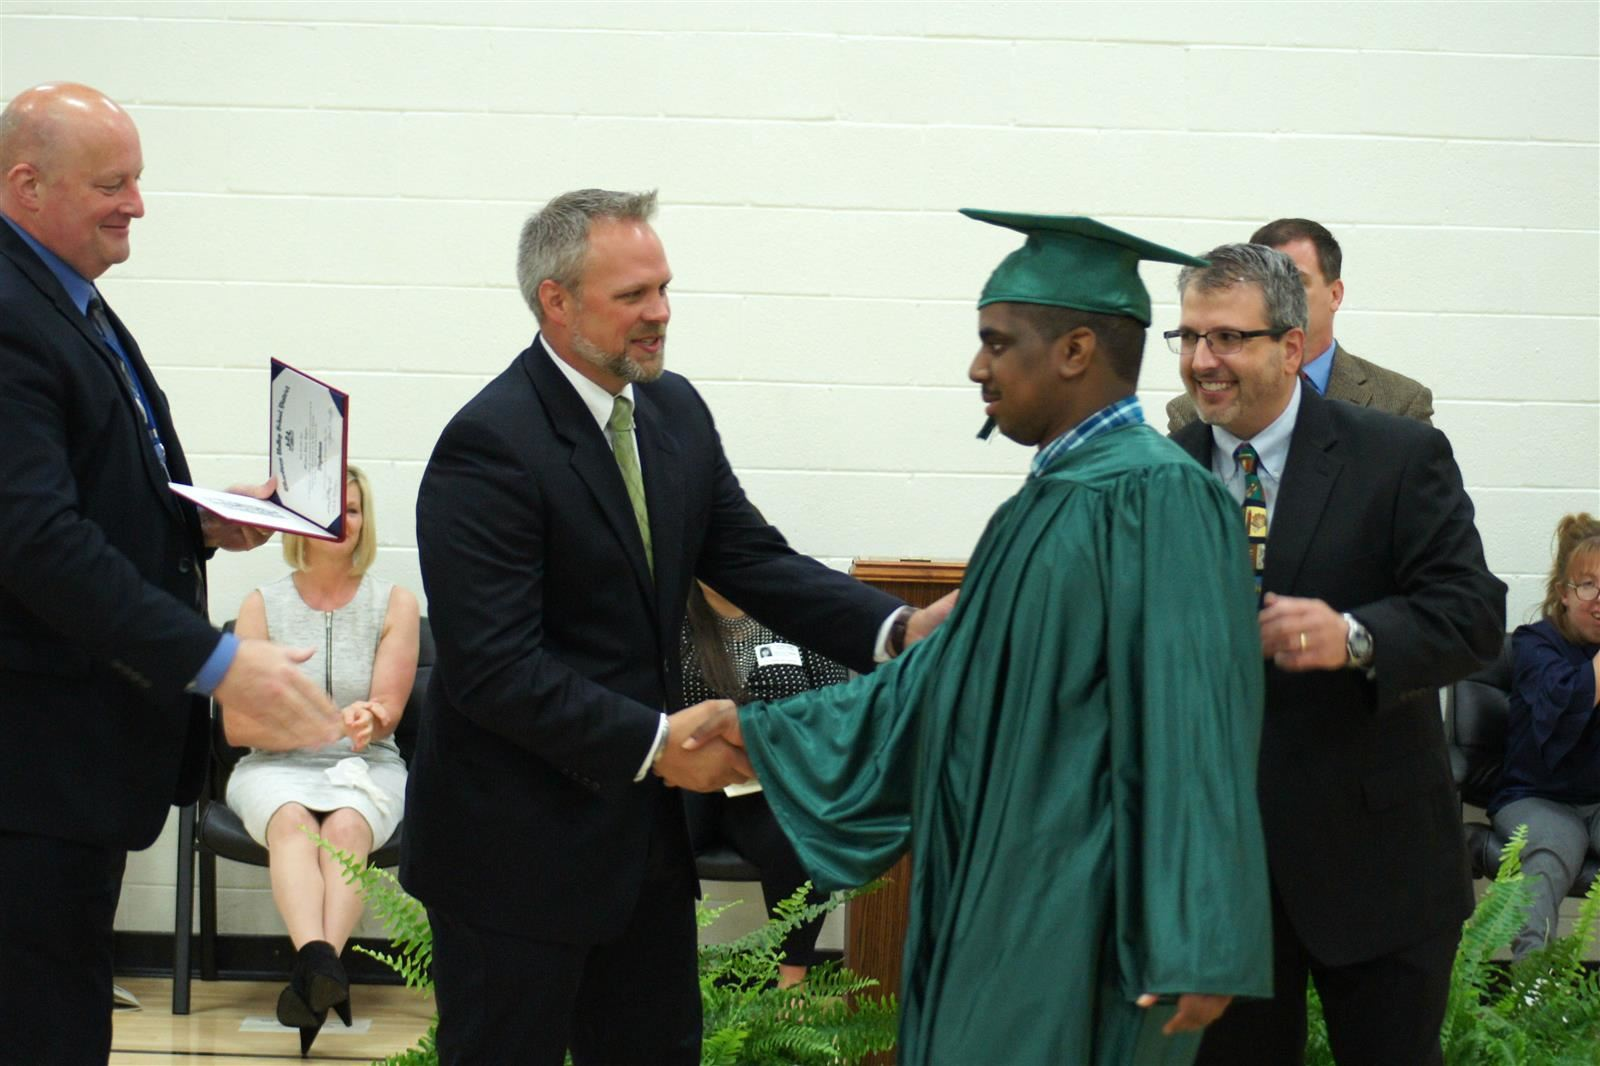 A student is congratulated during graduation.